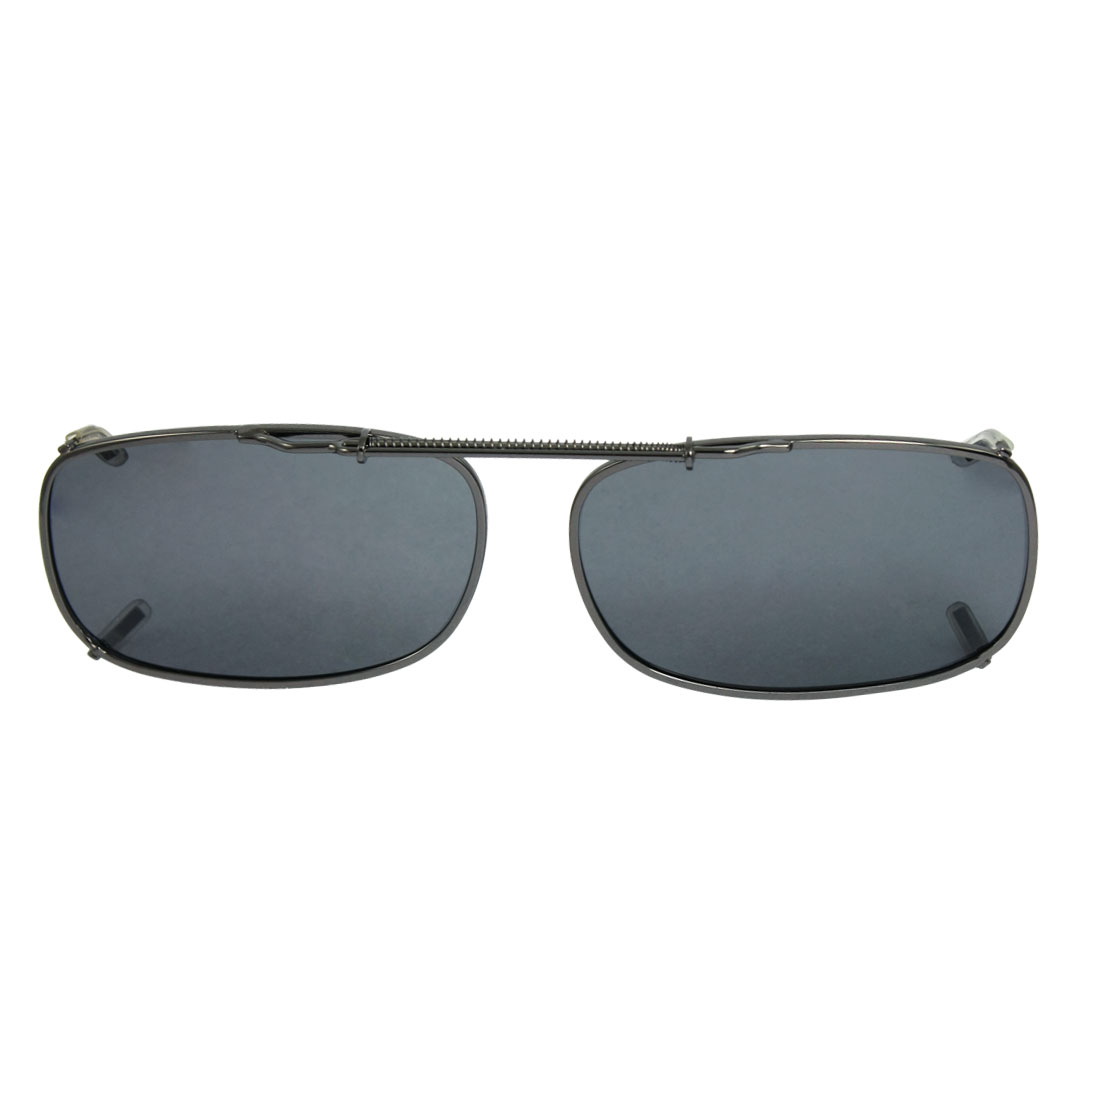 Unisex Outdoor Sports Rectangle Grey Lens Full Frame Clip on Polarized Sunglasses